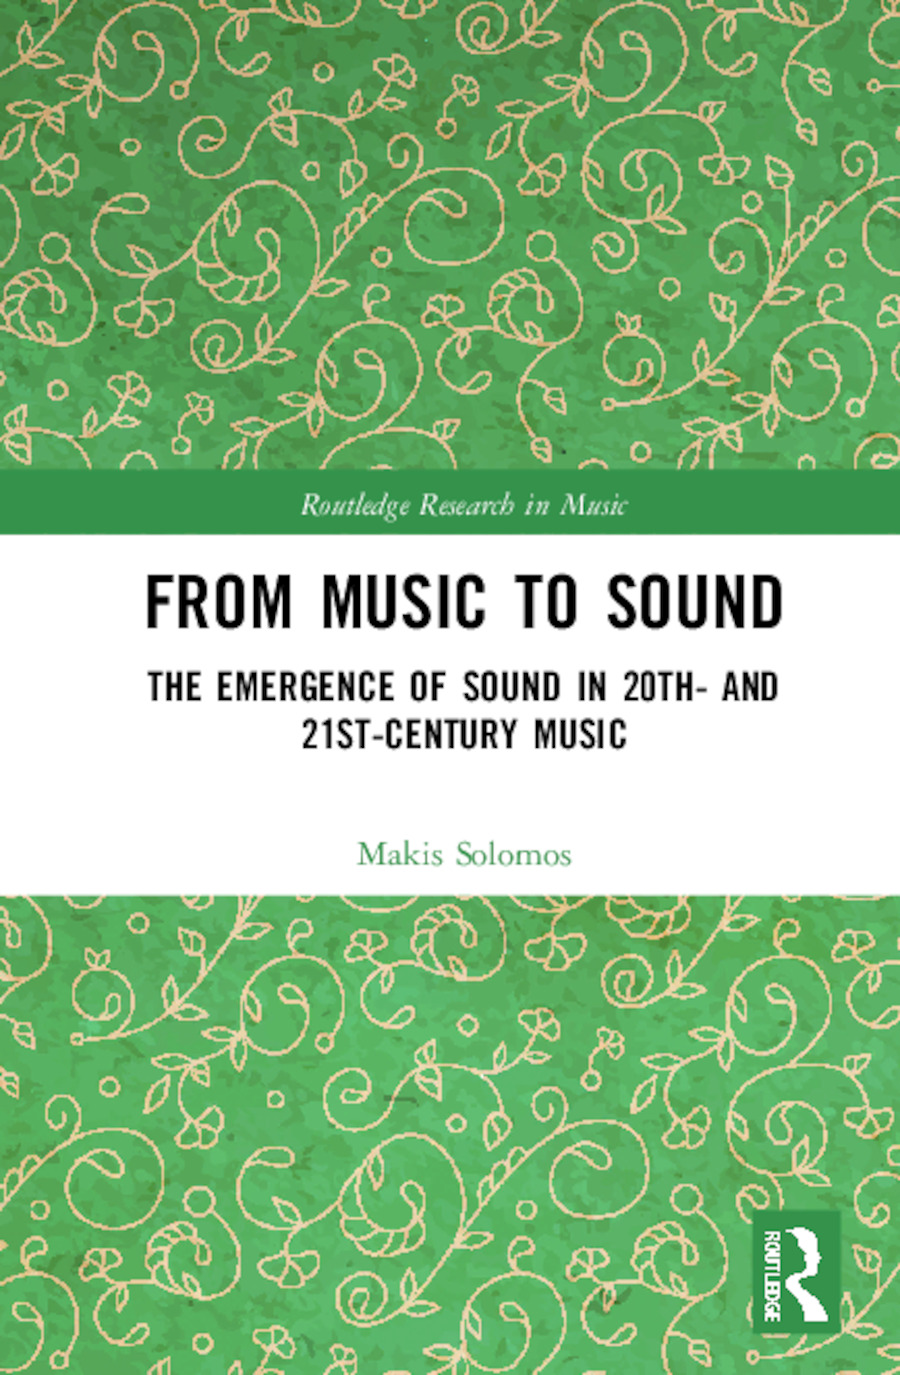 From Music to Sound: The Emergence of Sound in 20th- and 21st-Century Music book cover